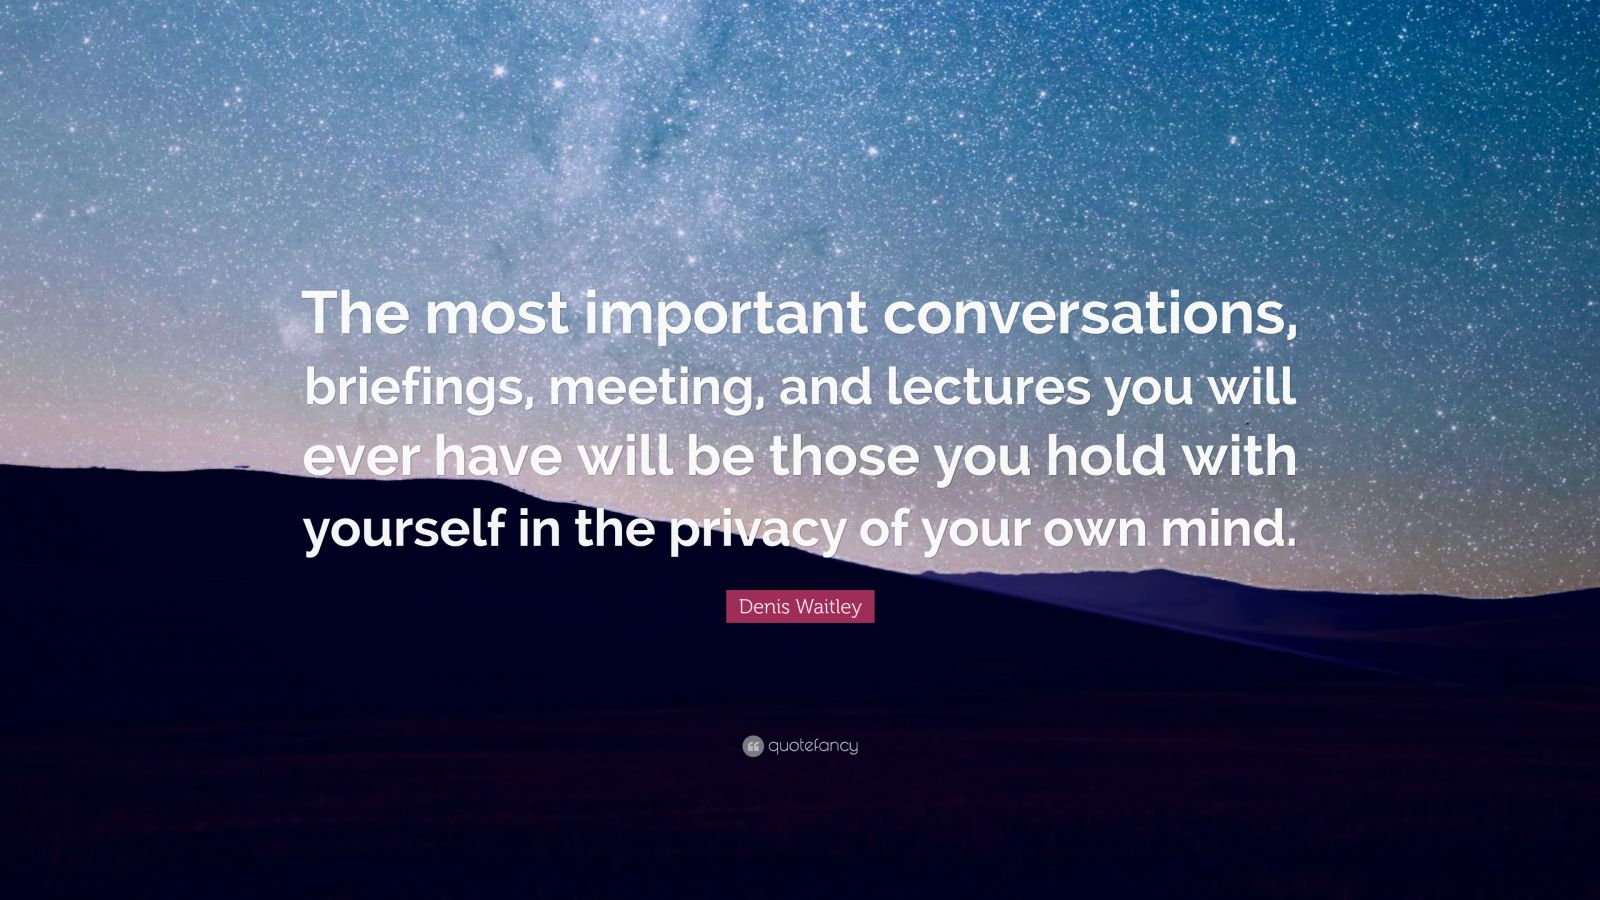 """Denis Waitley Quote: """"The most important conversations, briefings, meeting, and lectures you will ever have will be those you hold with yourself in the privacy of your own mind."""""""